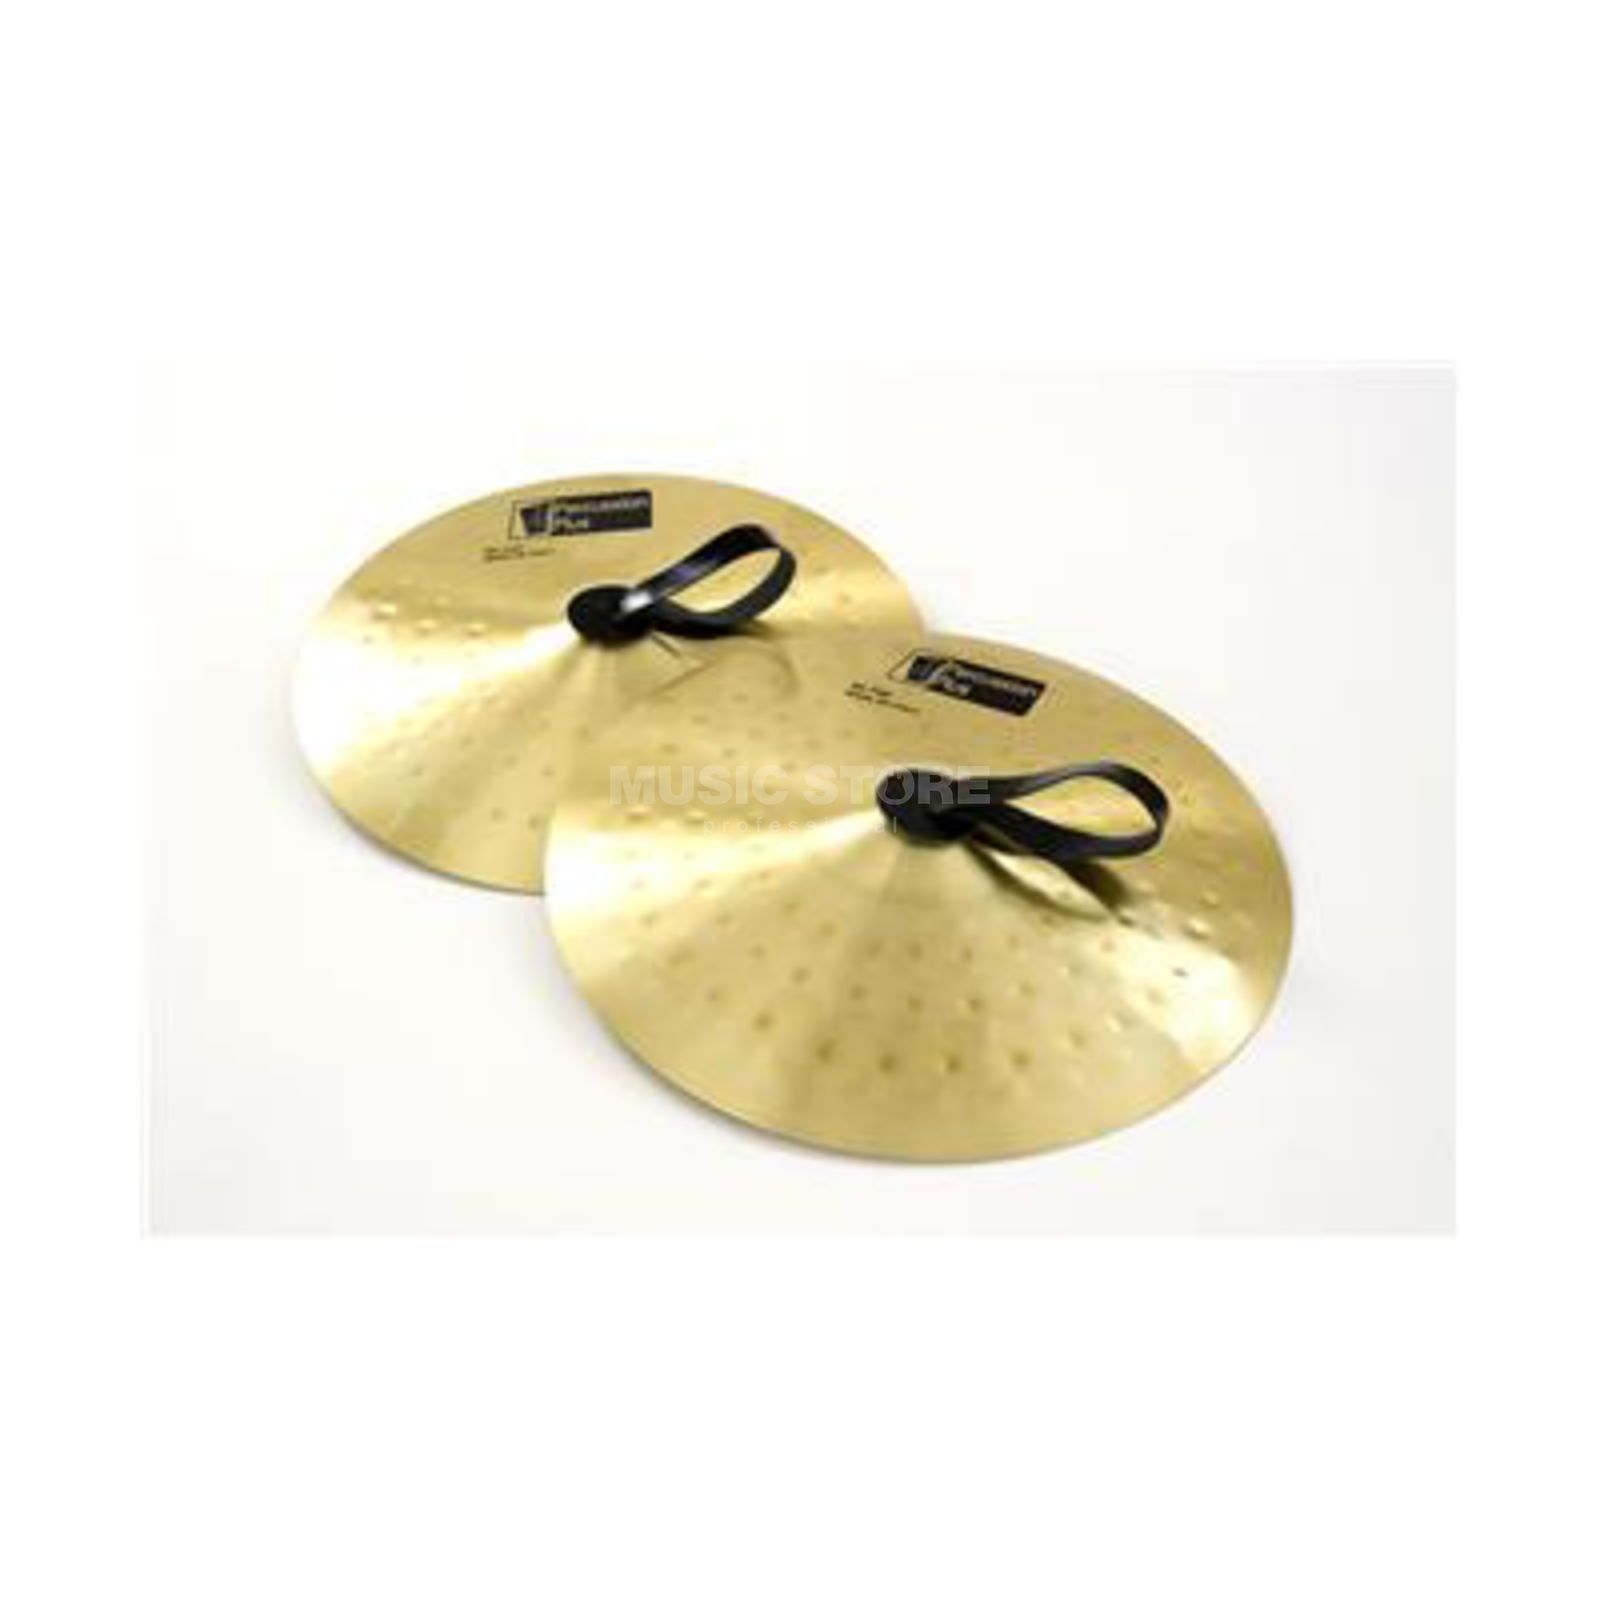 "Percussion Plus PP958 Cymbals 12"", Marching Pair, with straps Produktbild"